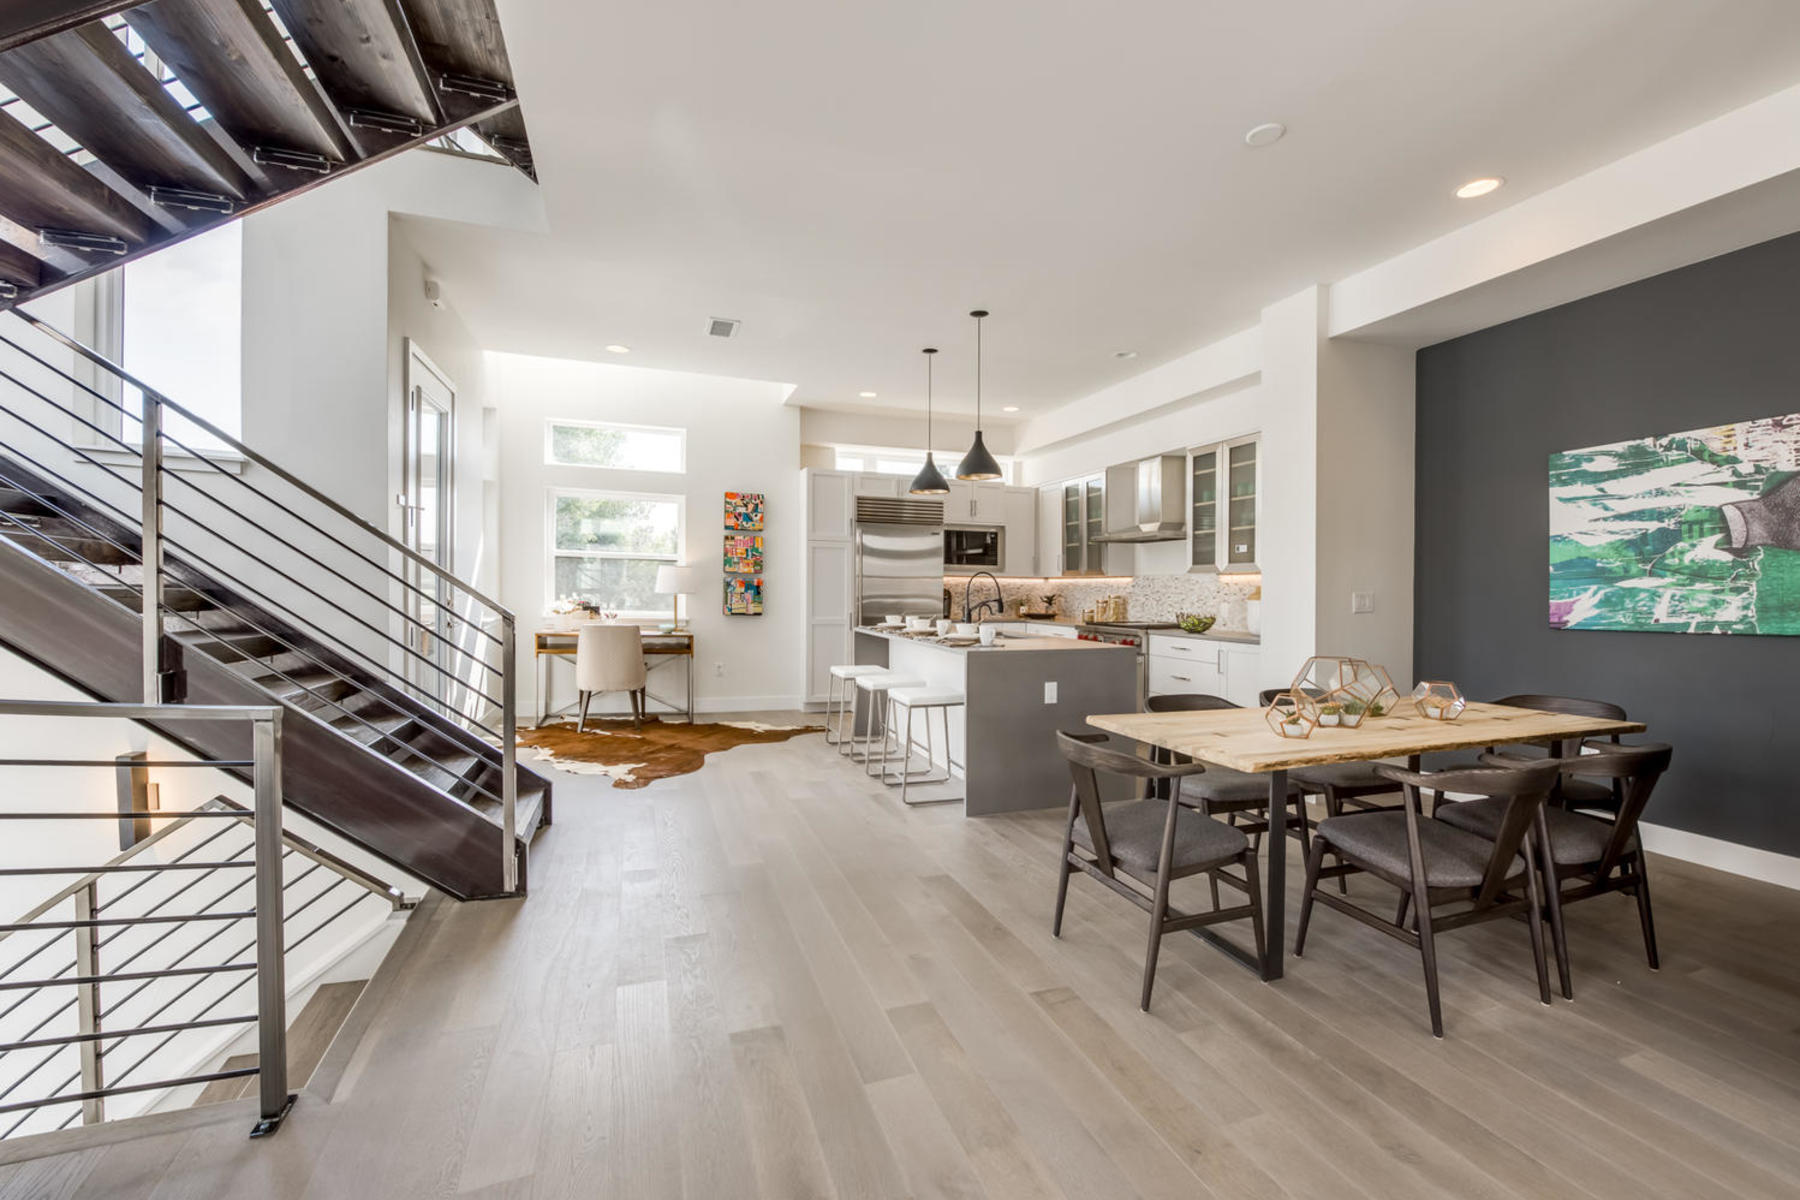 Townhouse for Sale at Gorgeous End Unit At Sloans! 1570 Quitman Street, Denver, Colorado, 80204 United States